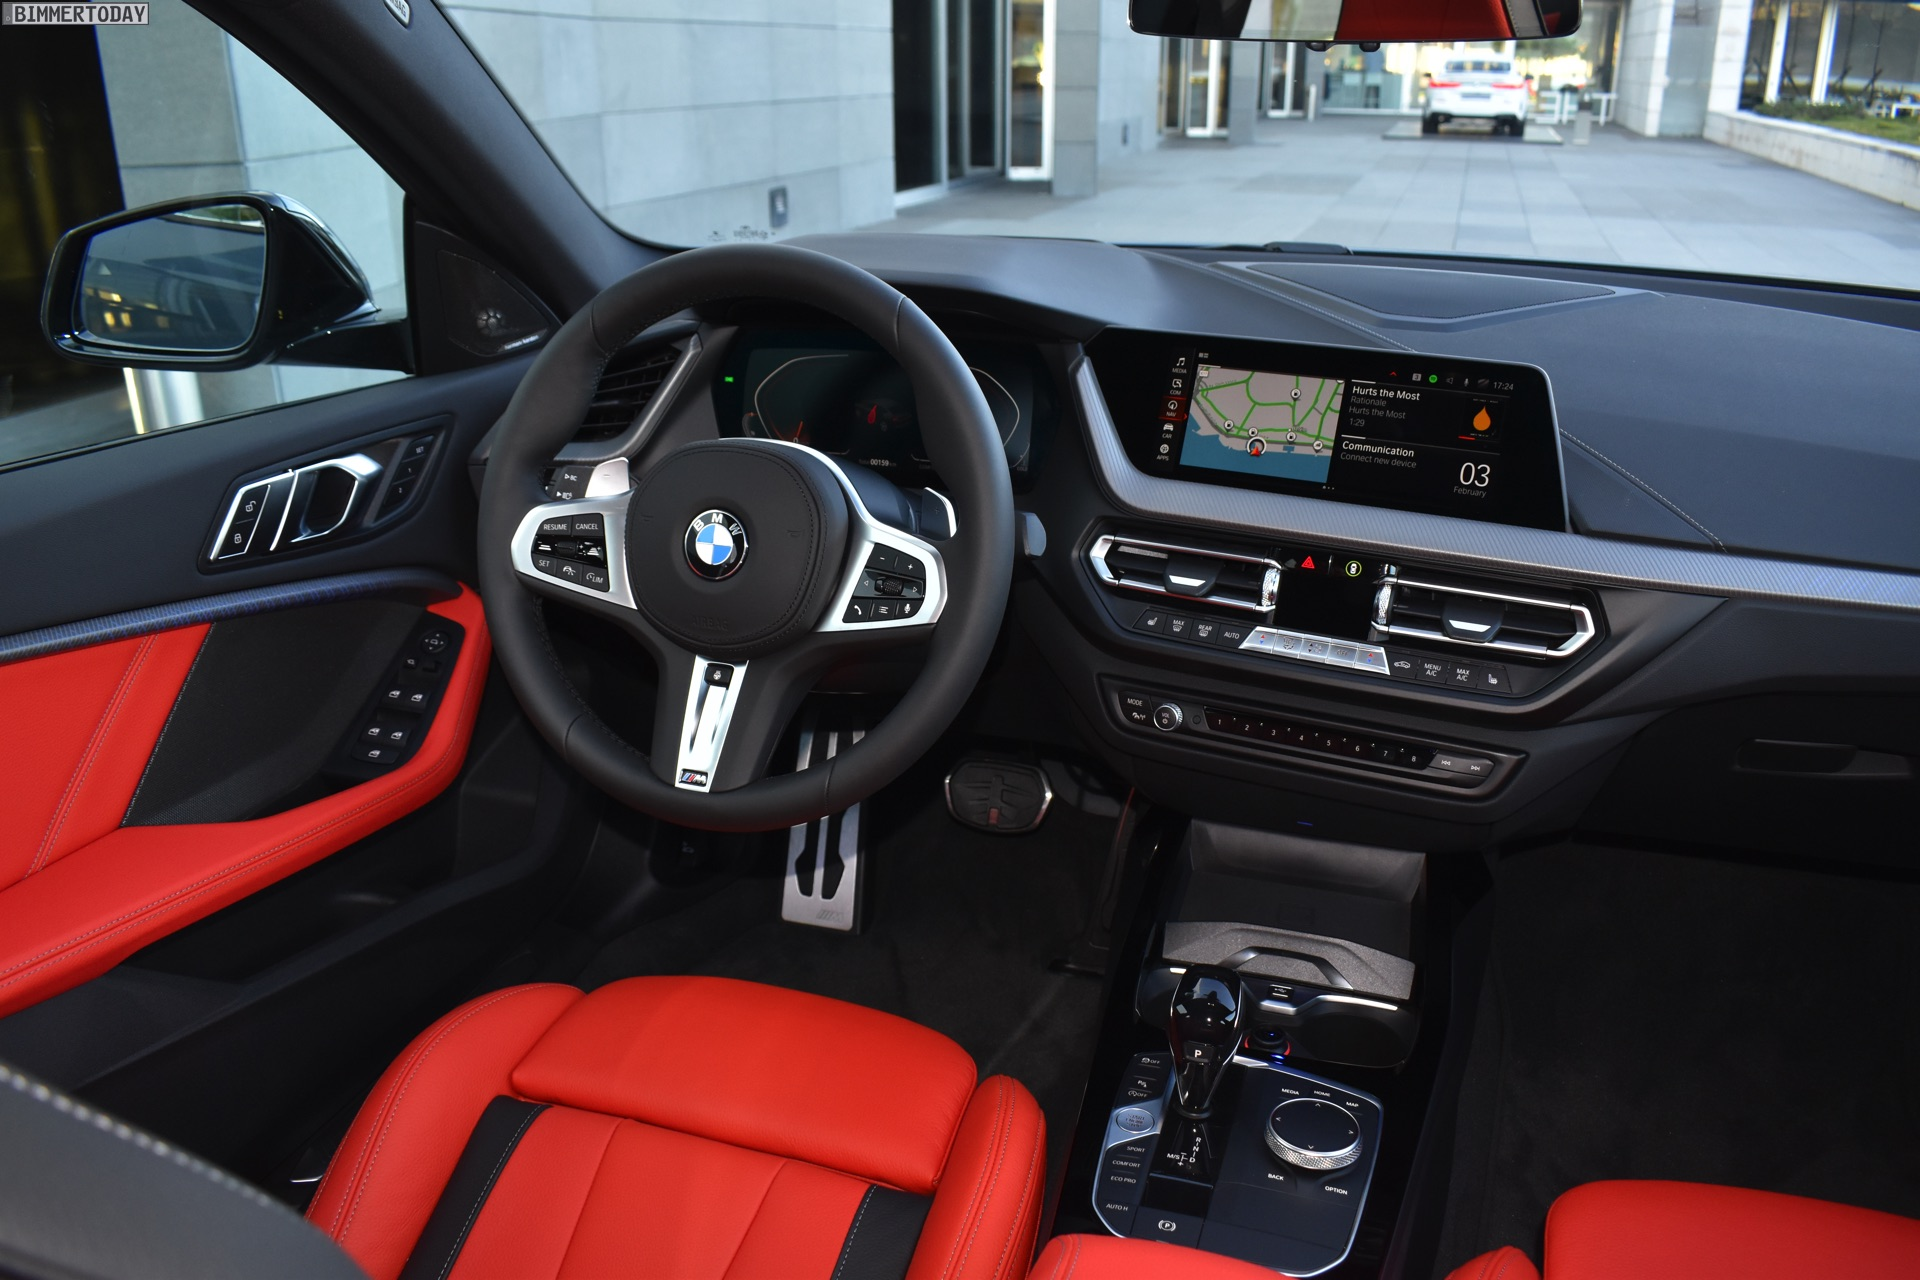 2020 BMW 220D Xdrive Exterior and Interior